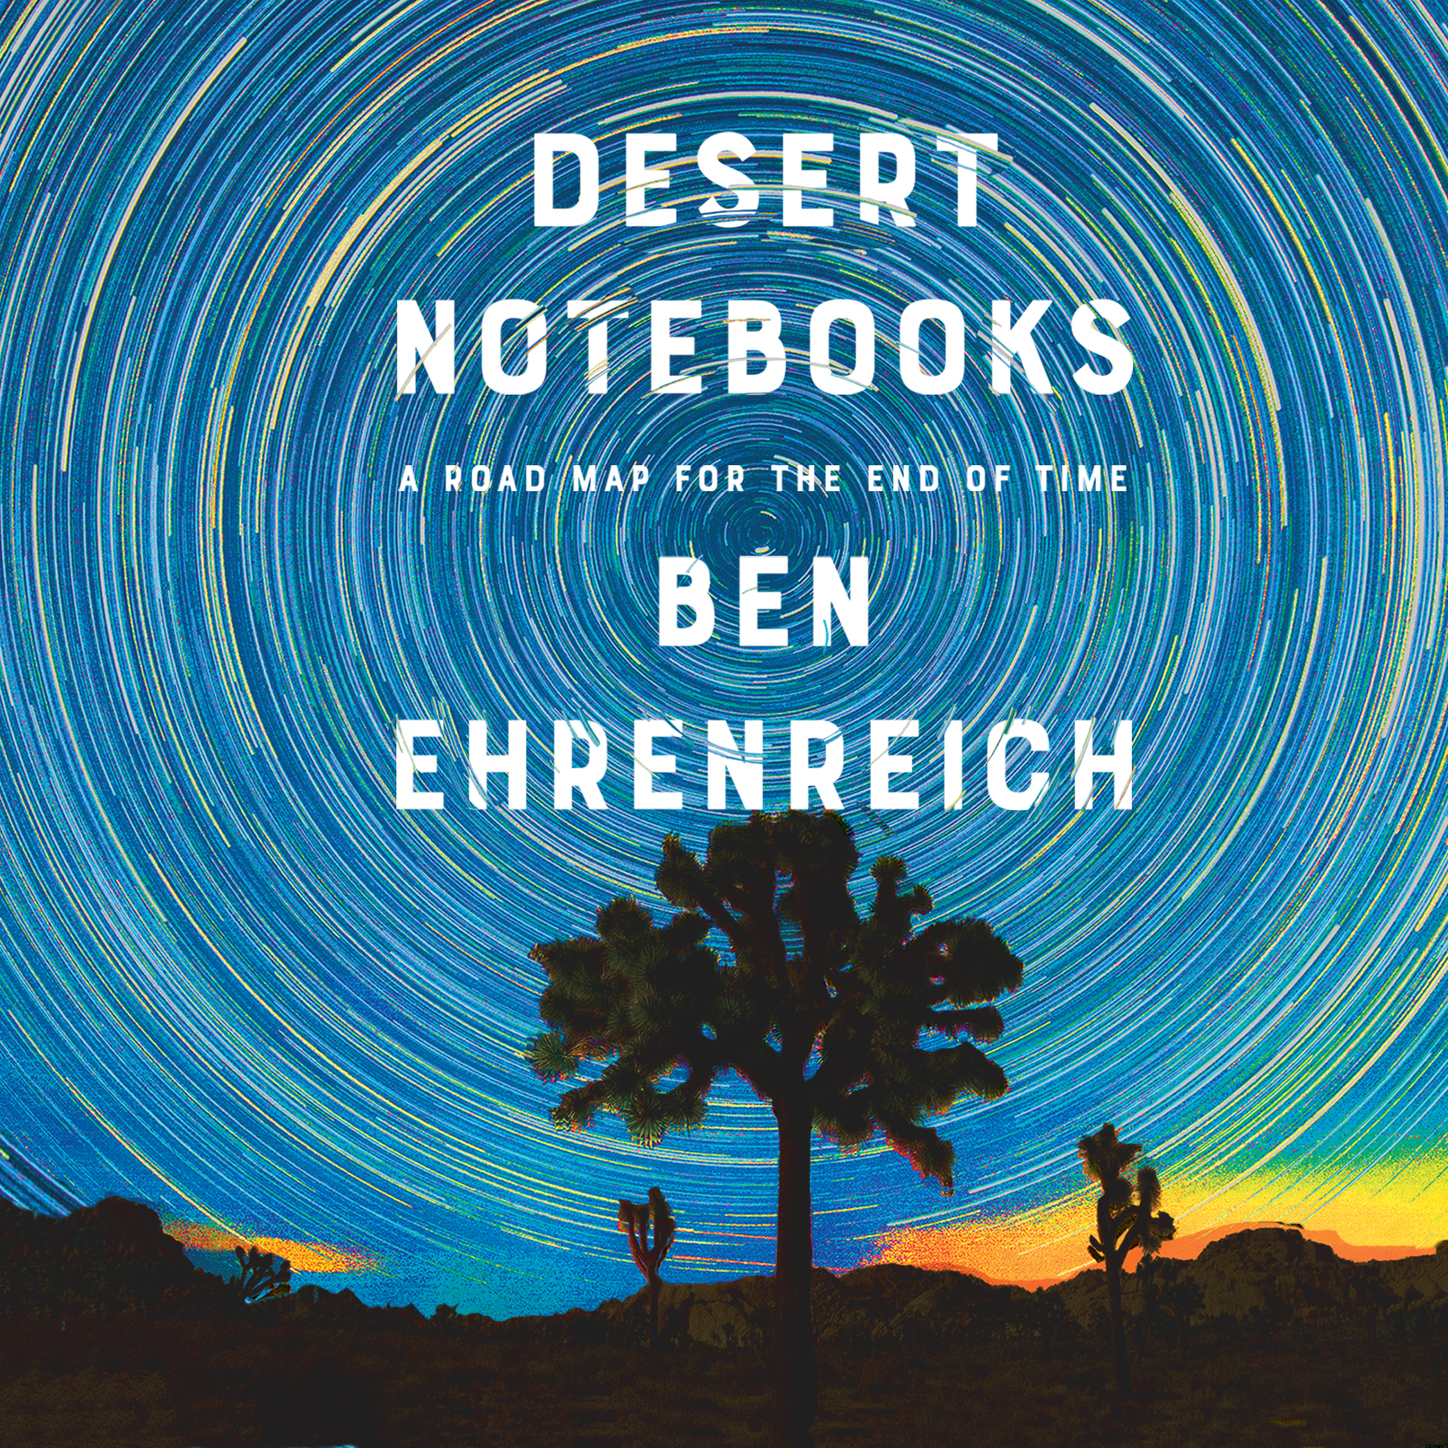 Desert Notebooks - A Road Map for the End of Time (Unabridged)